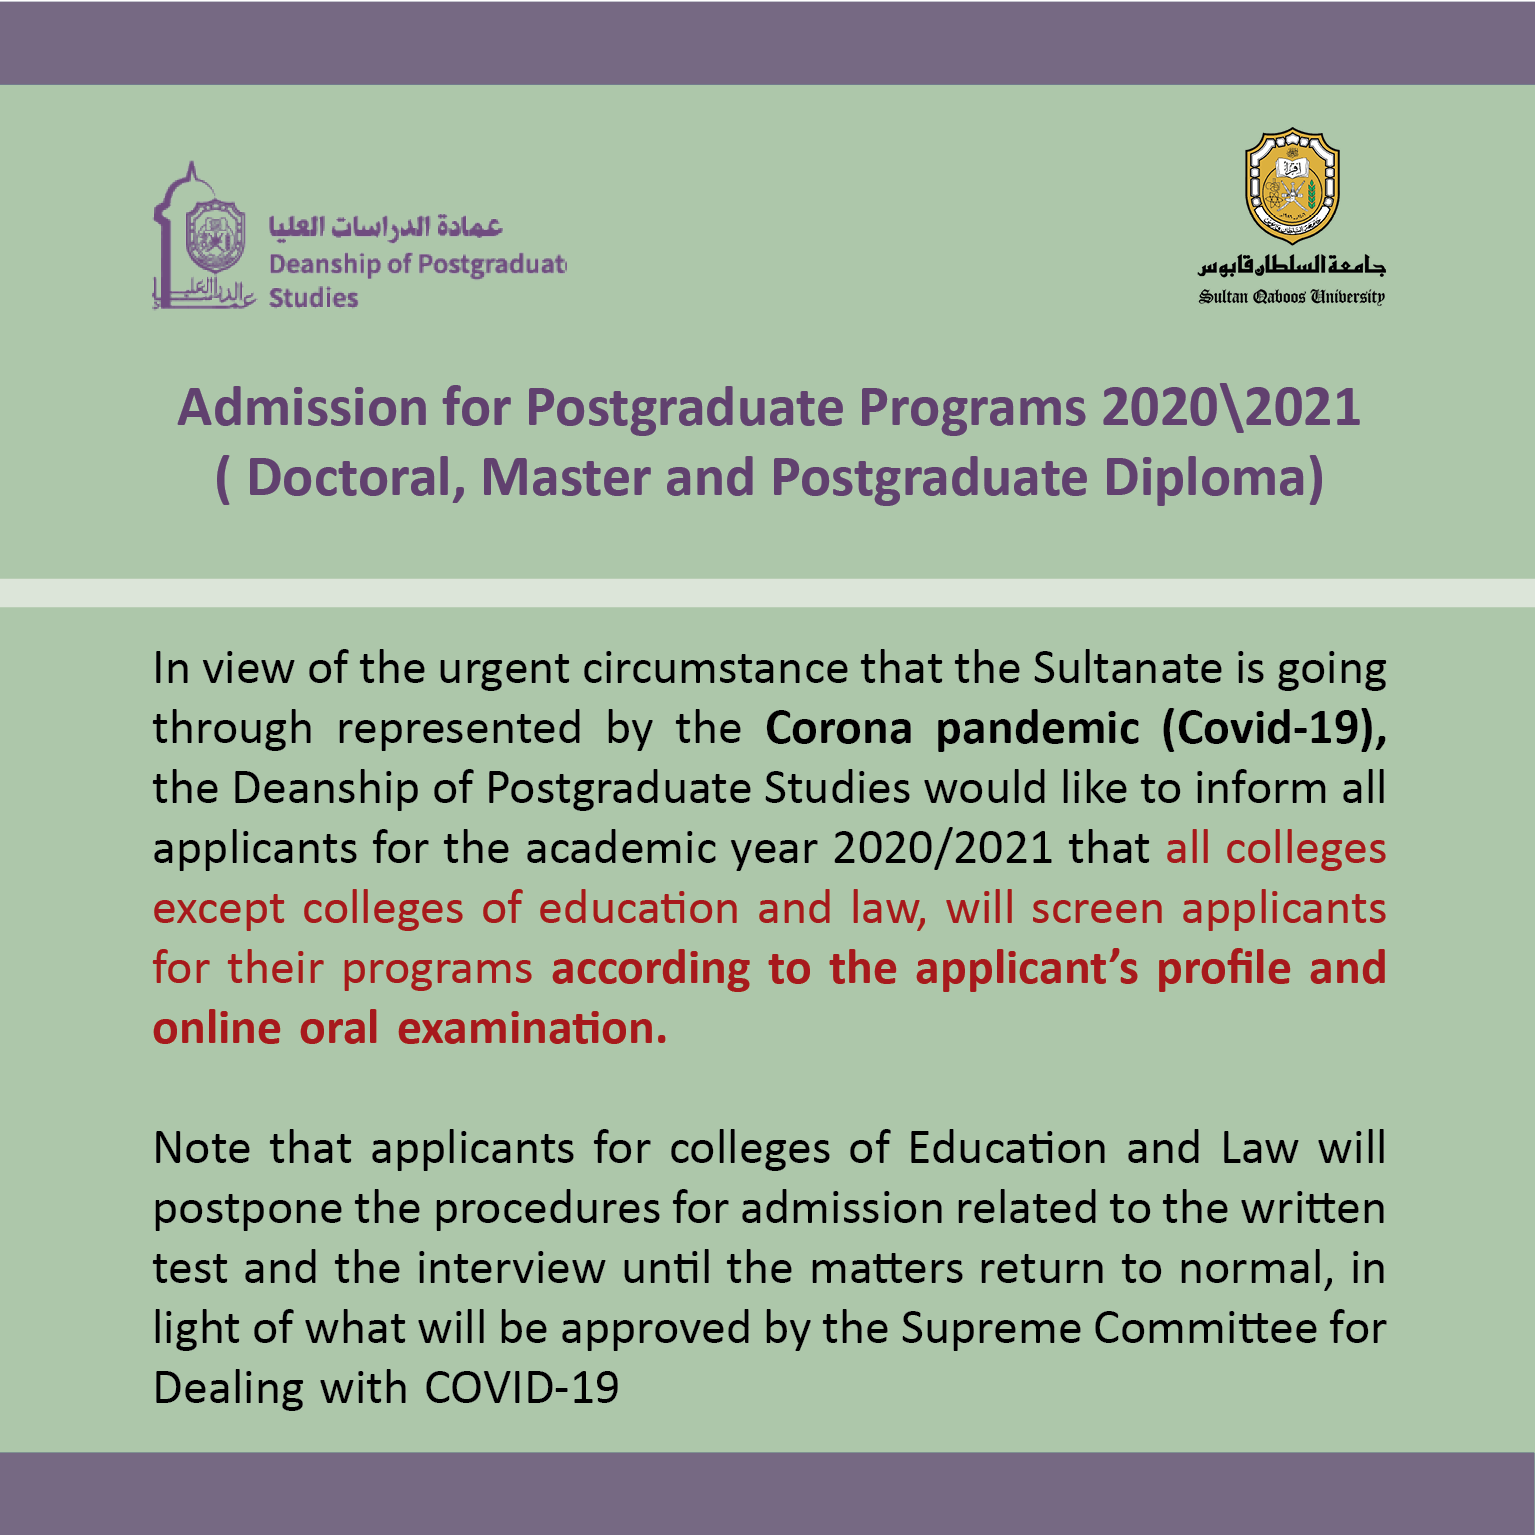 Admission for Postgraduate Programs 2020/2021